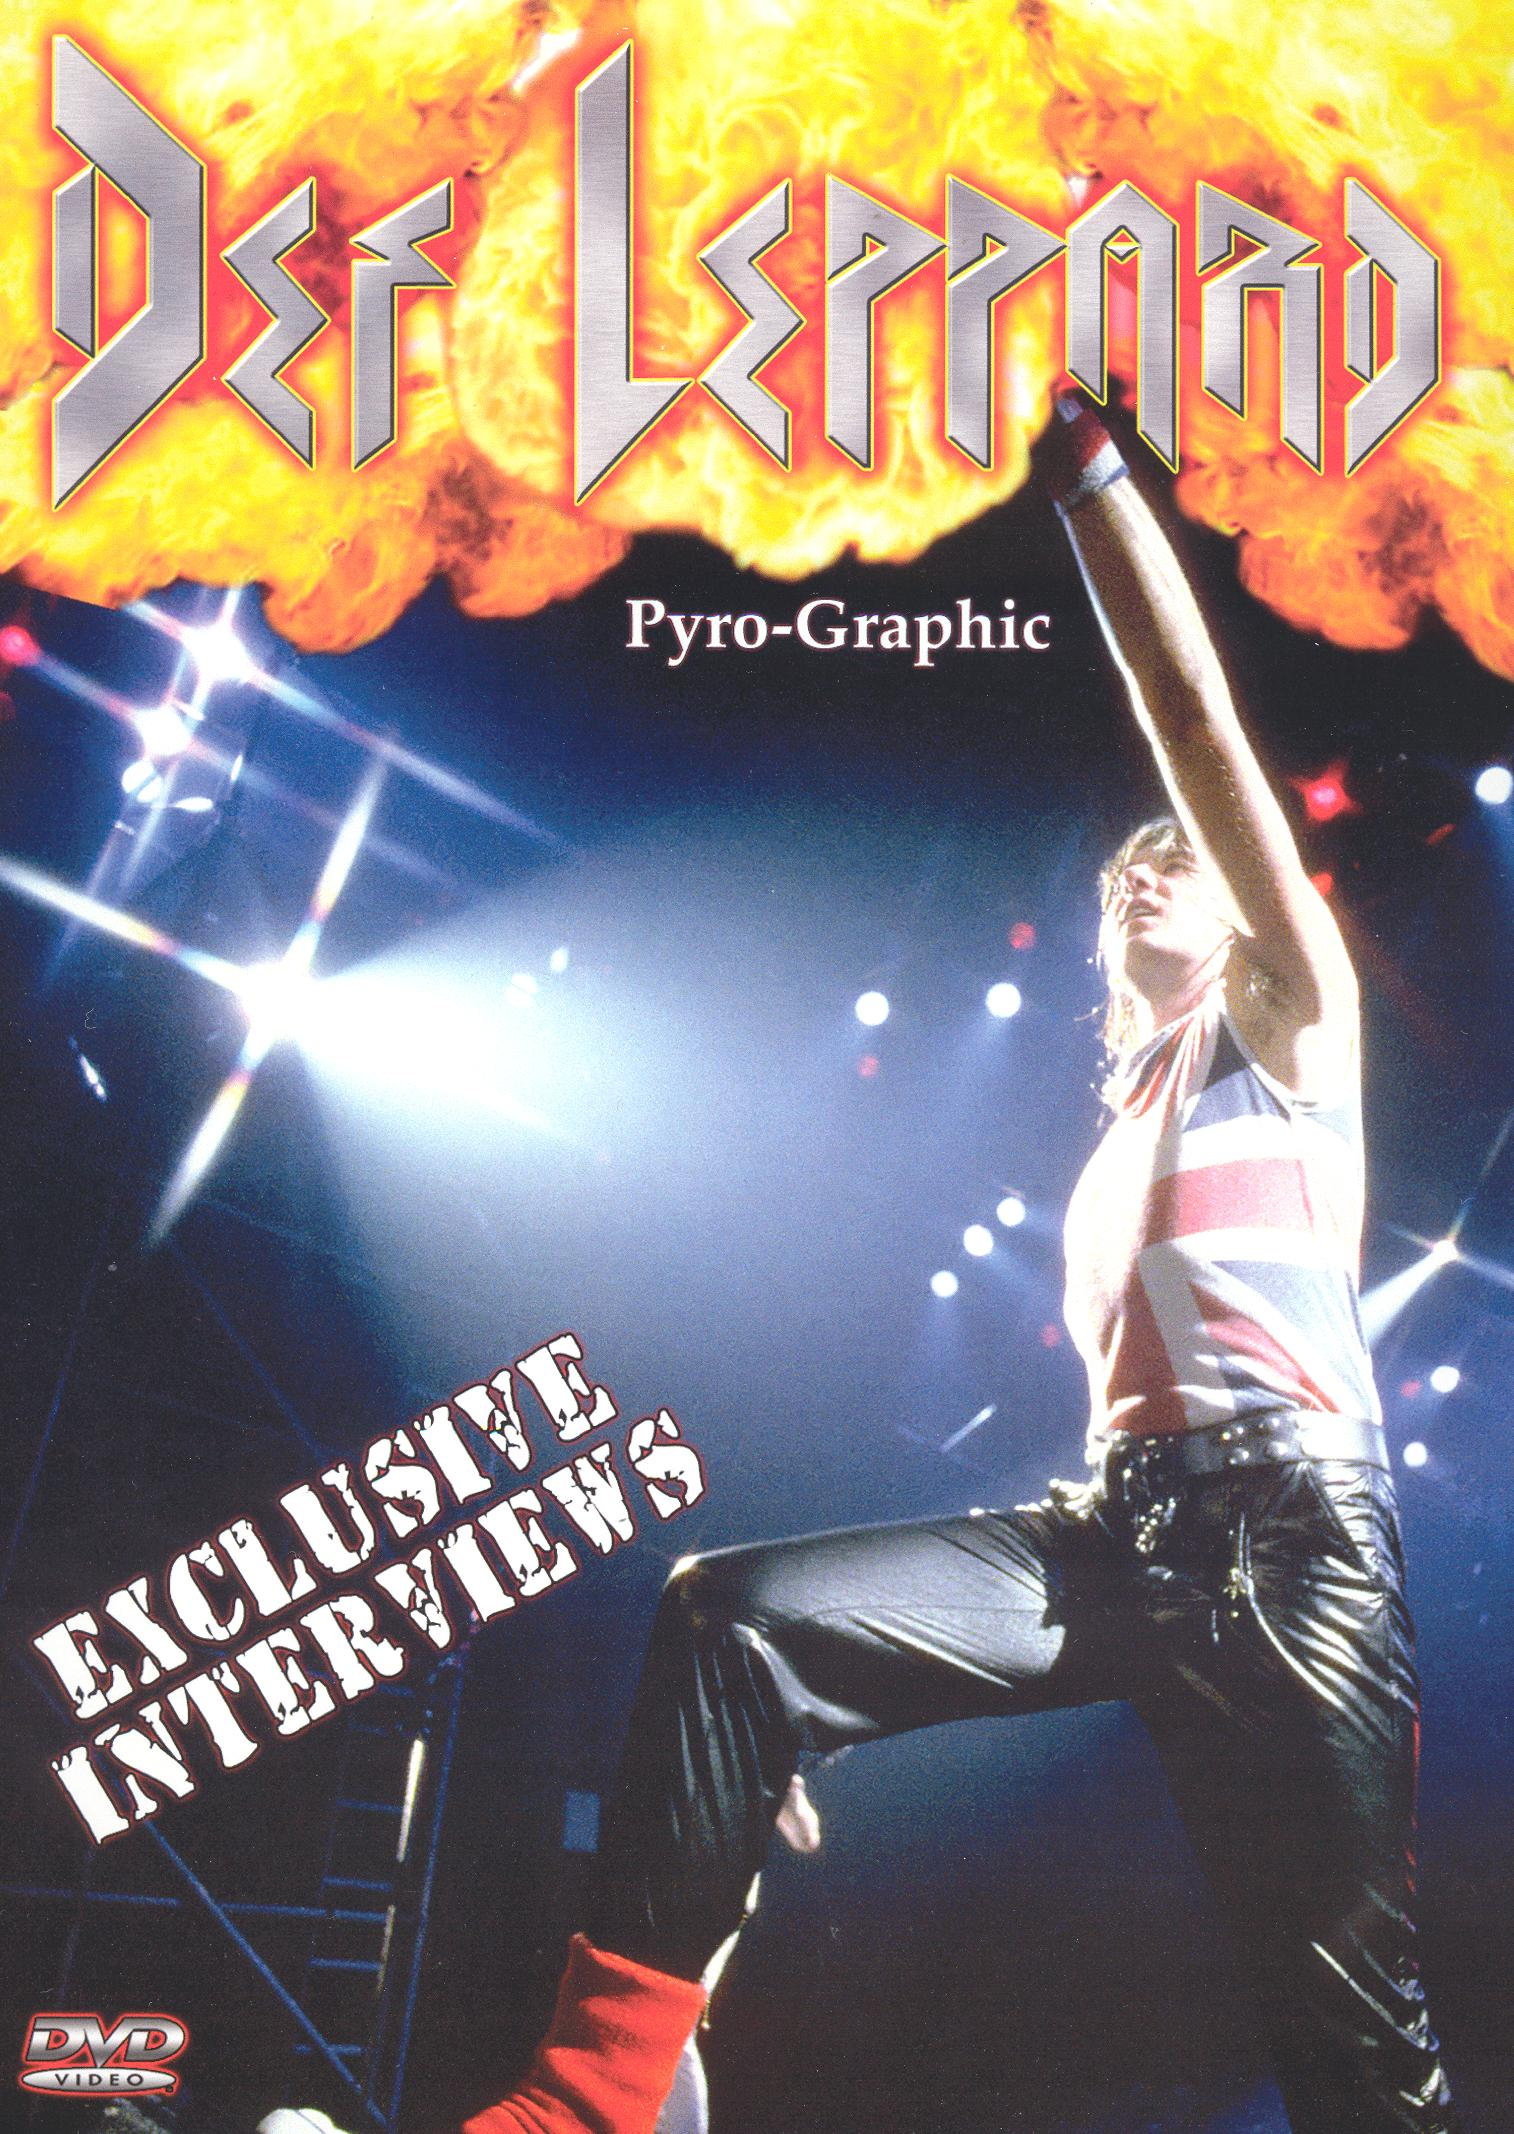 Def Leppard: Pyro-Graphic - Interviews